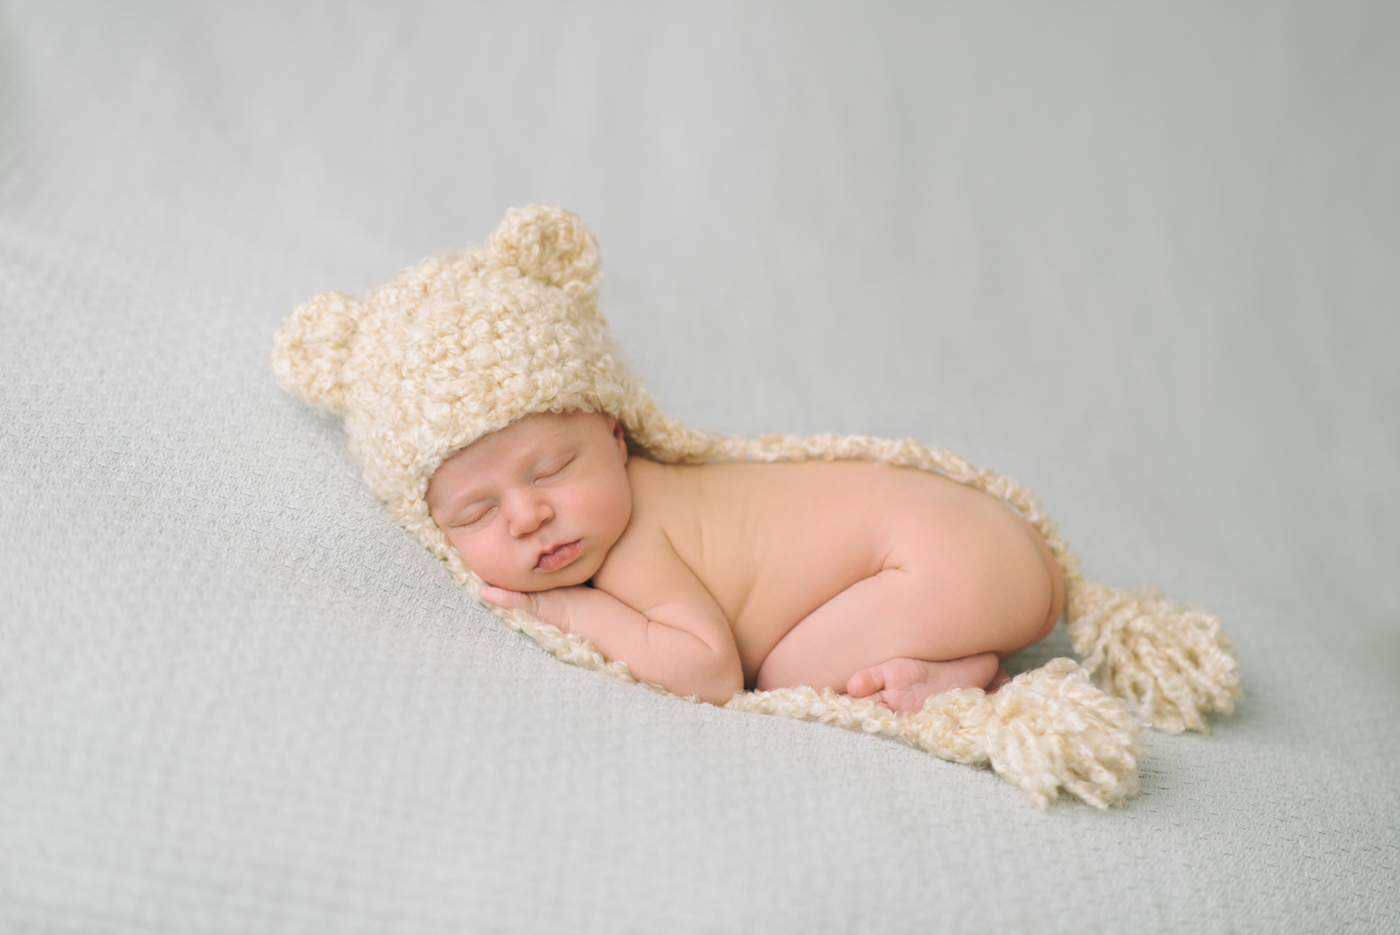 newborn-photographer-portland-oregon-cream-knit-hat-bear-stocking-cap-sleeping-baby-boy-blue-shelley-marie-photo-5